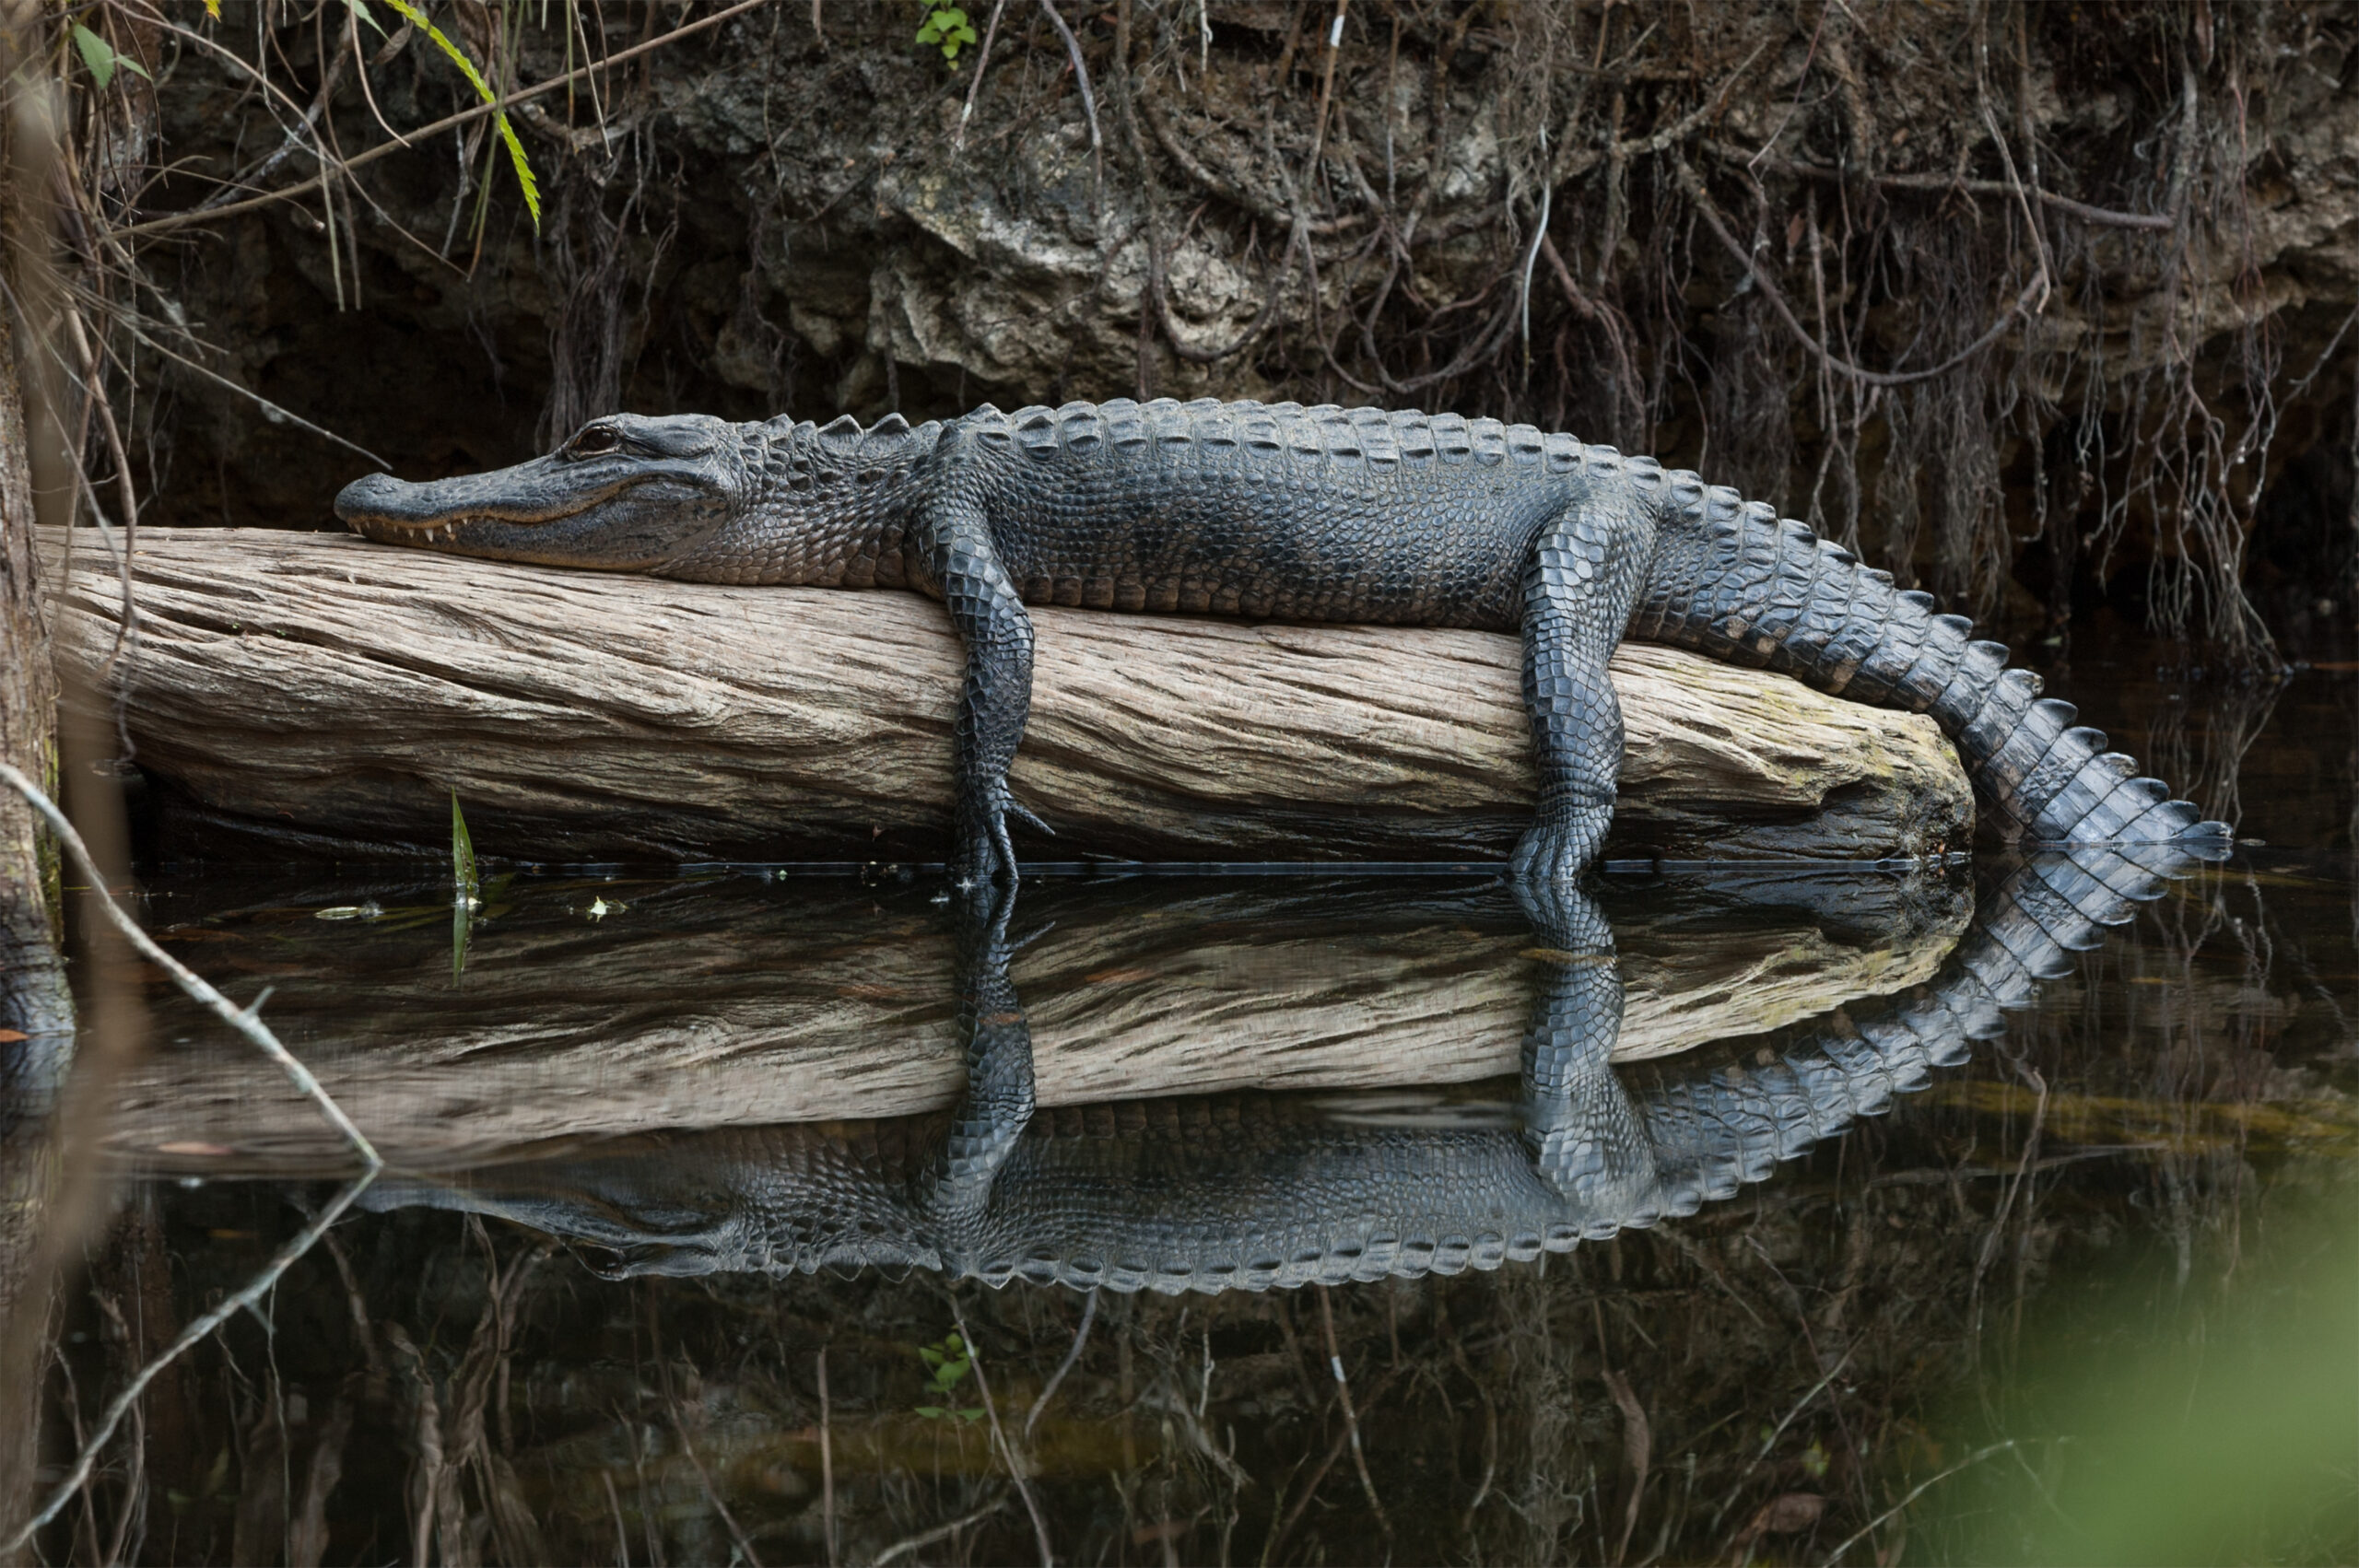 American Crocodile on a log in Everglades National Park, Florida